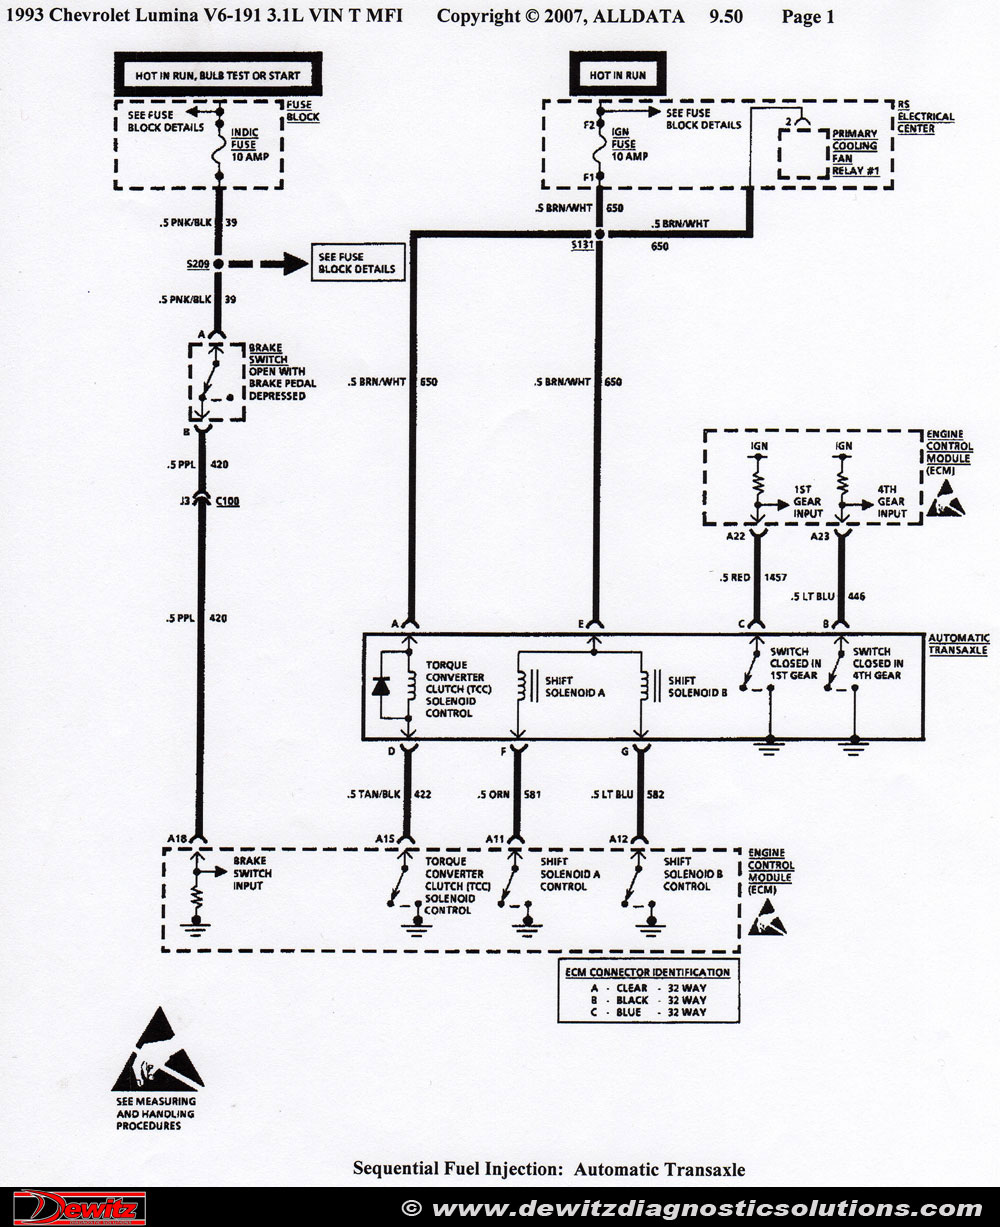 Bravada Fuel System Diagram Auto Electrical Wiring 1998 Oldsmobile Chevrolet K1500 Tail Light 1997 Astro Ignition Switch Odicis 1999 Engine 2000